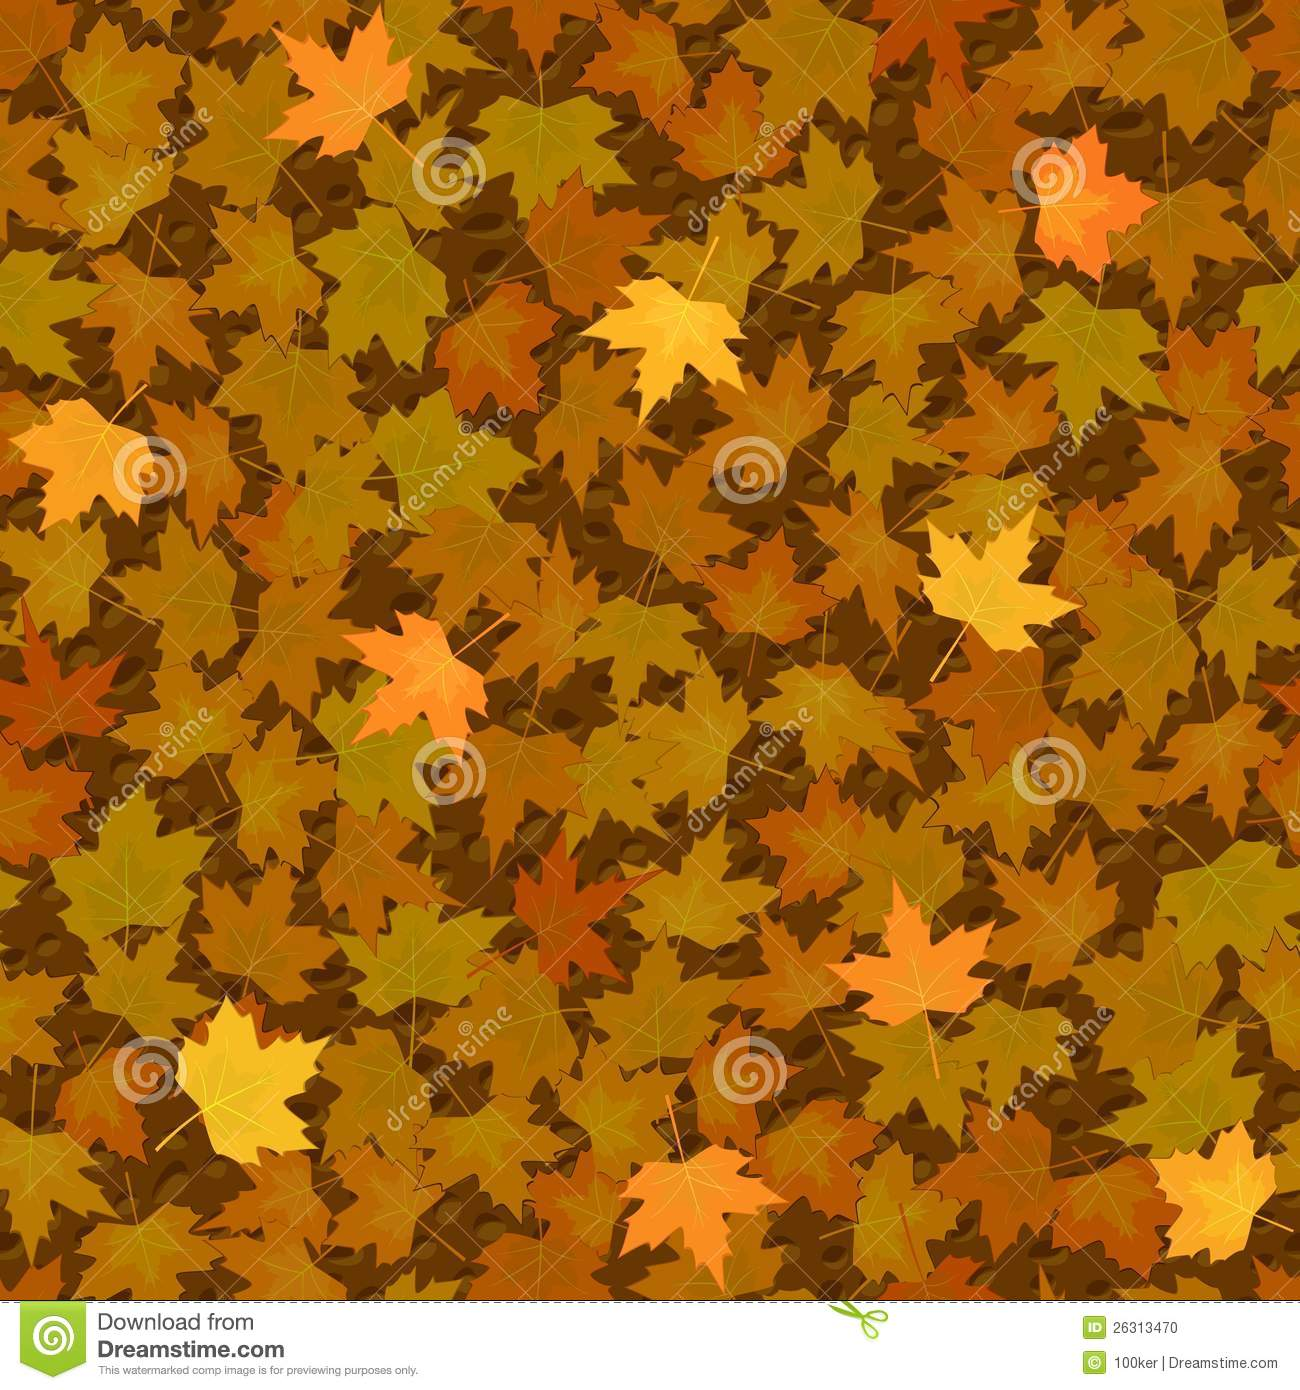 Fall Of The Leafe Wallpaper Autumn Yellow Maple Leaf Seamless Pattern Stock Photo